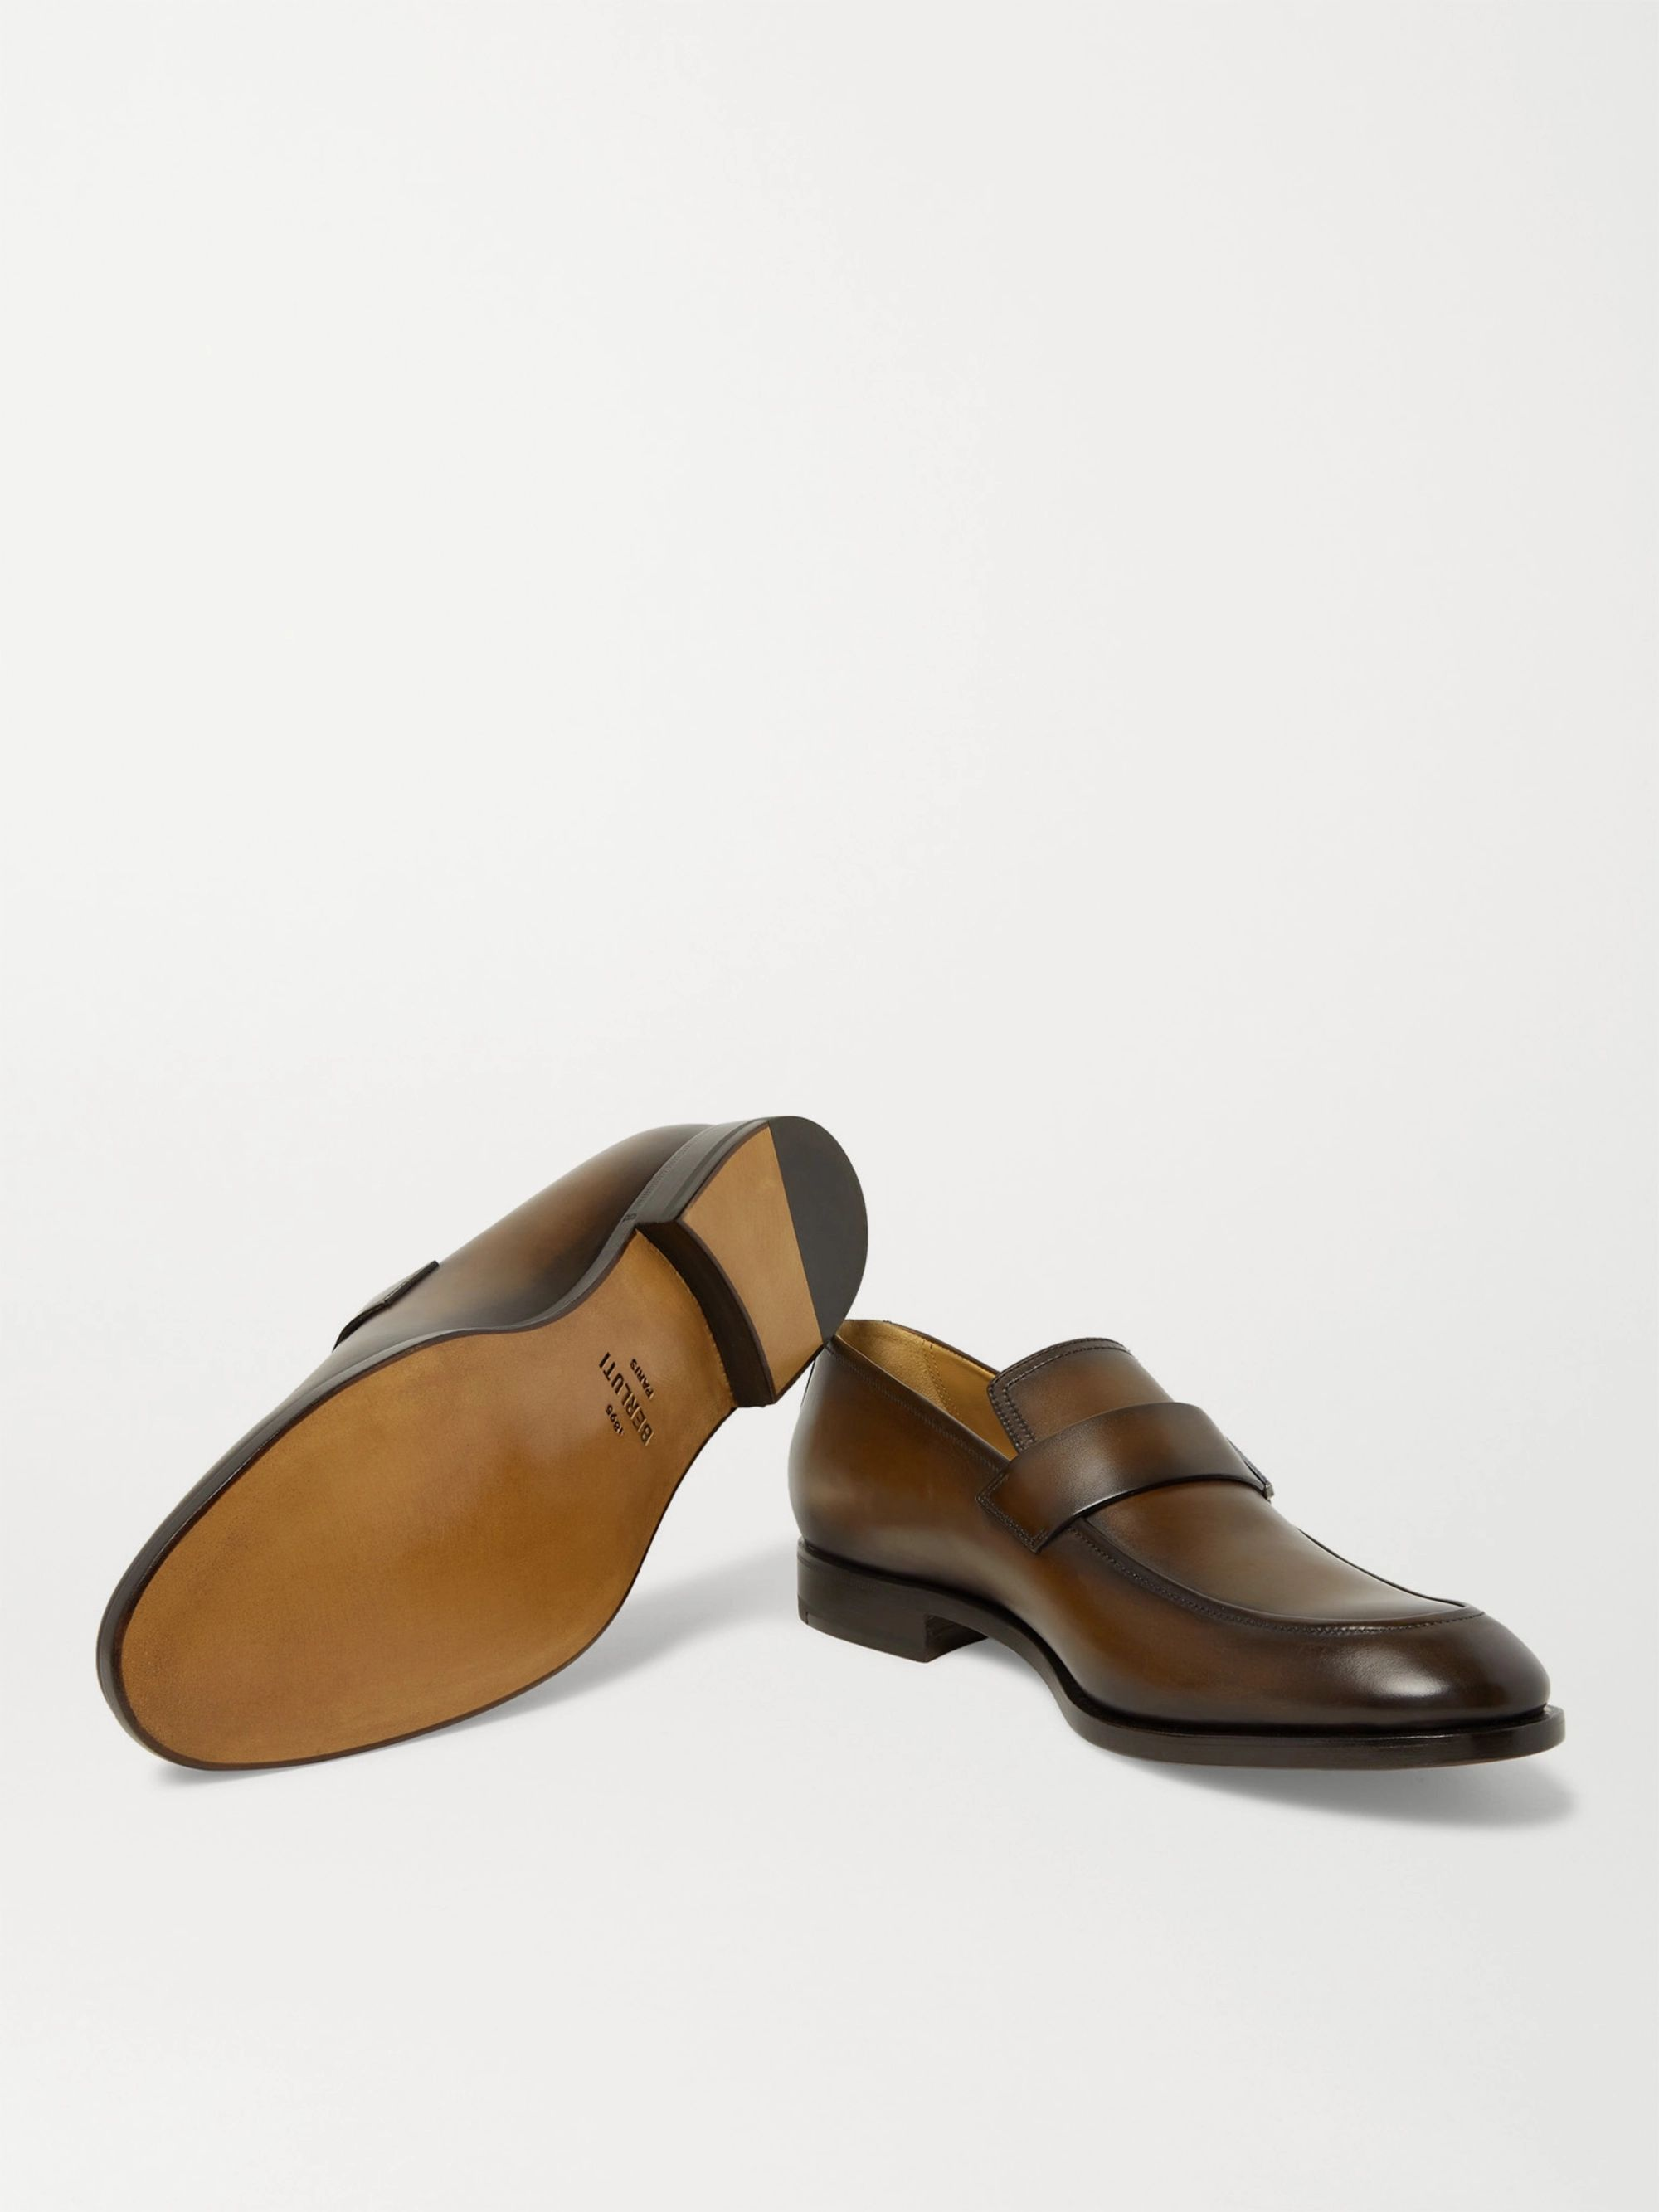 Berluti Reflet Leather Loafers